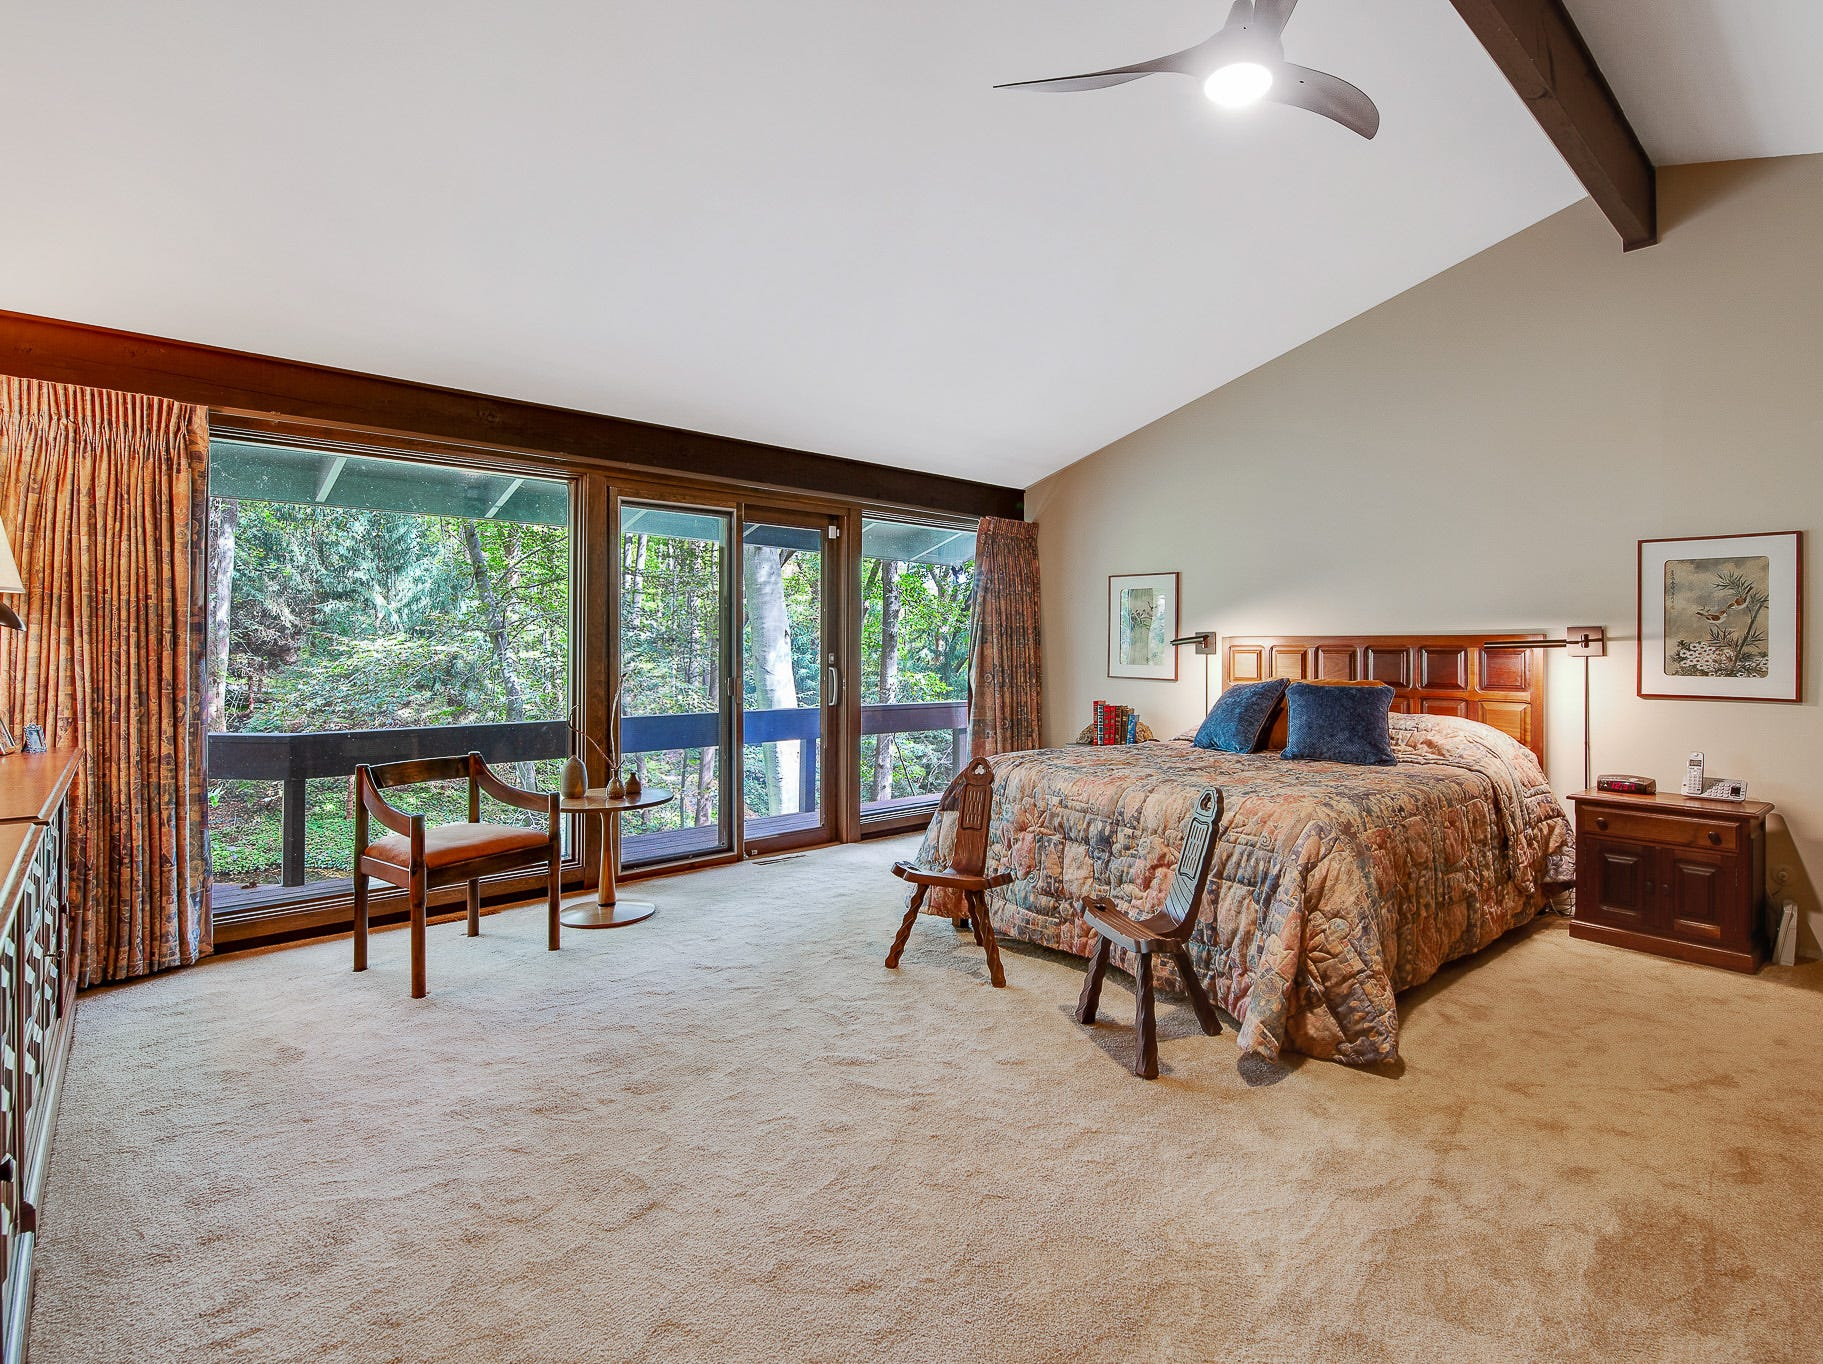 The master bedroom at 110 Thissell in Greenville offers views of greenery.